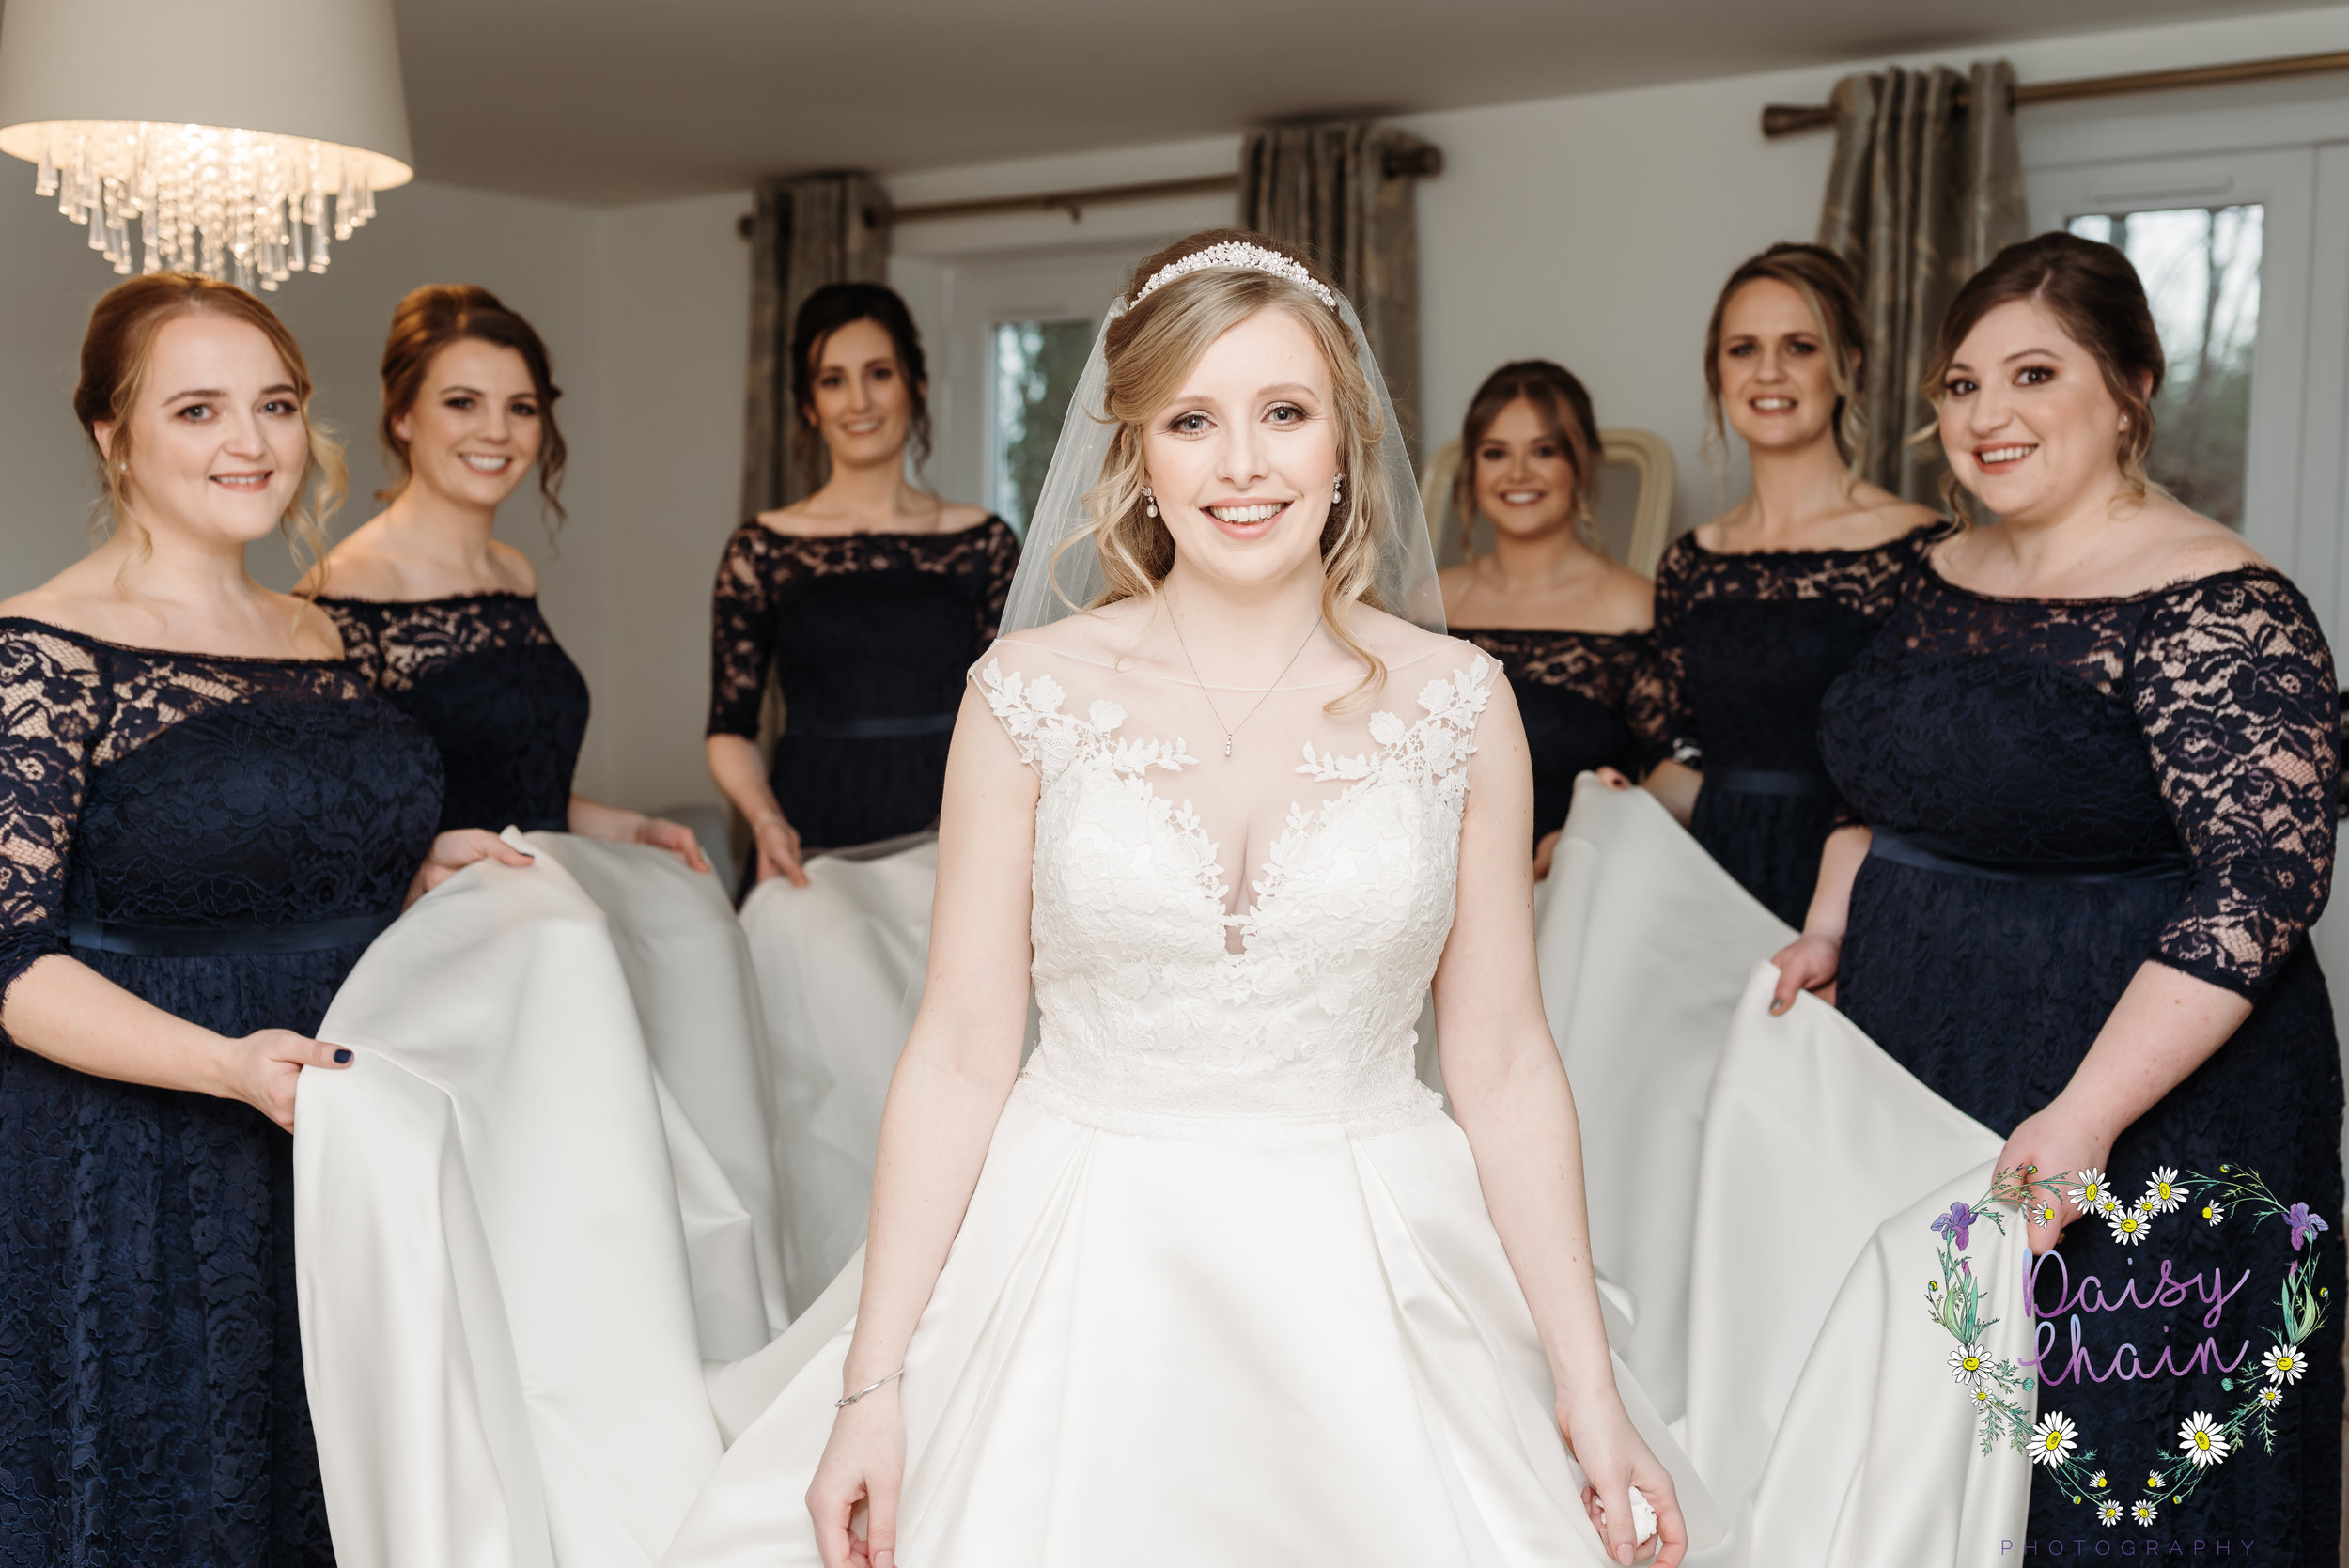 bride squad goals - lancashire wedding photographer